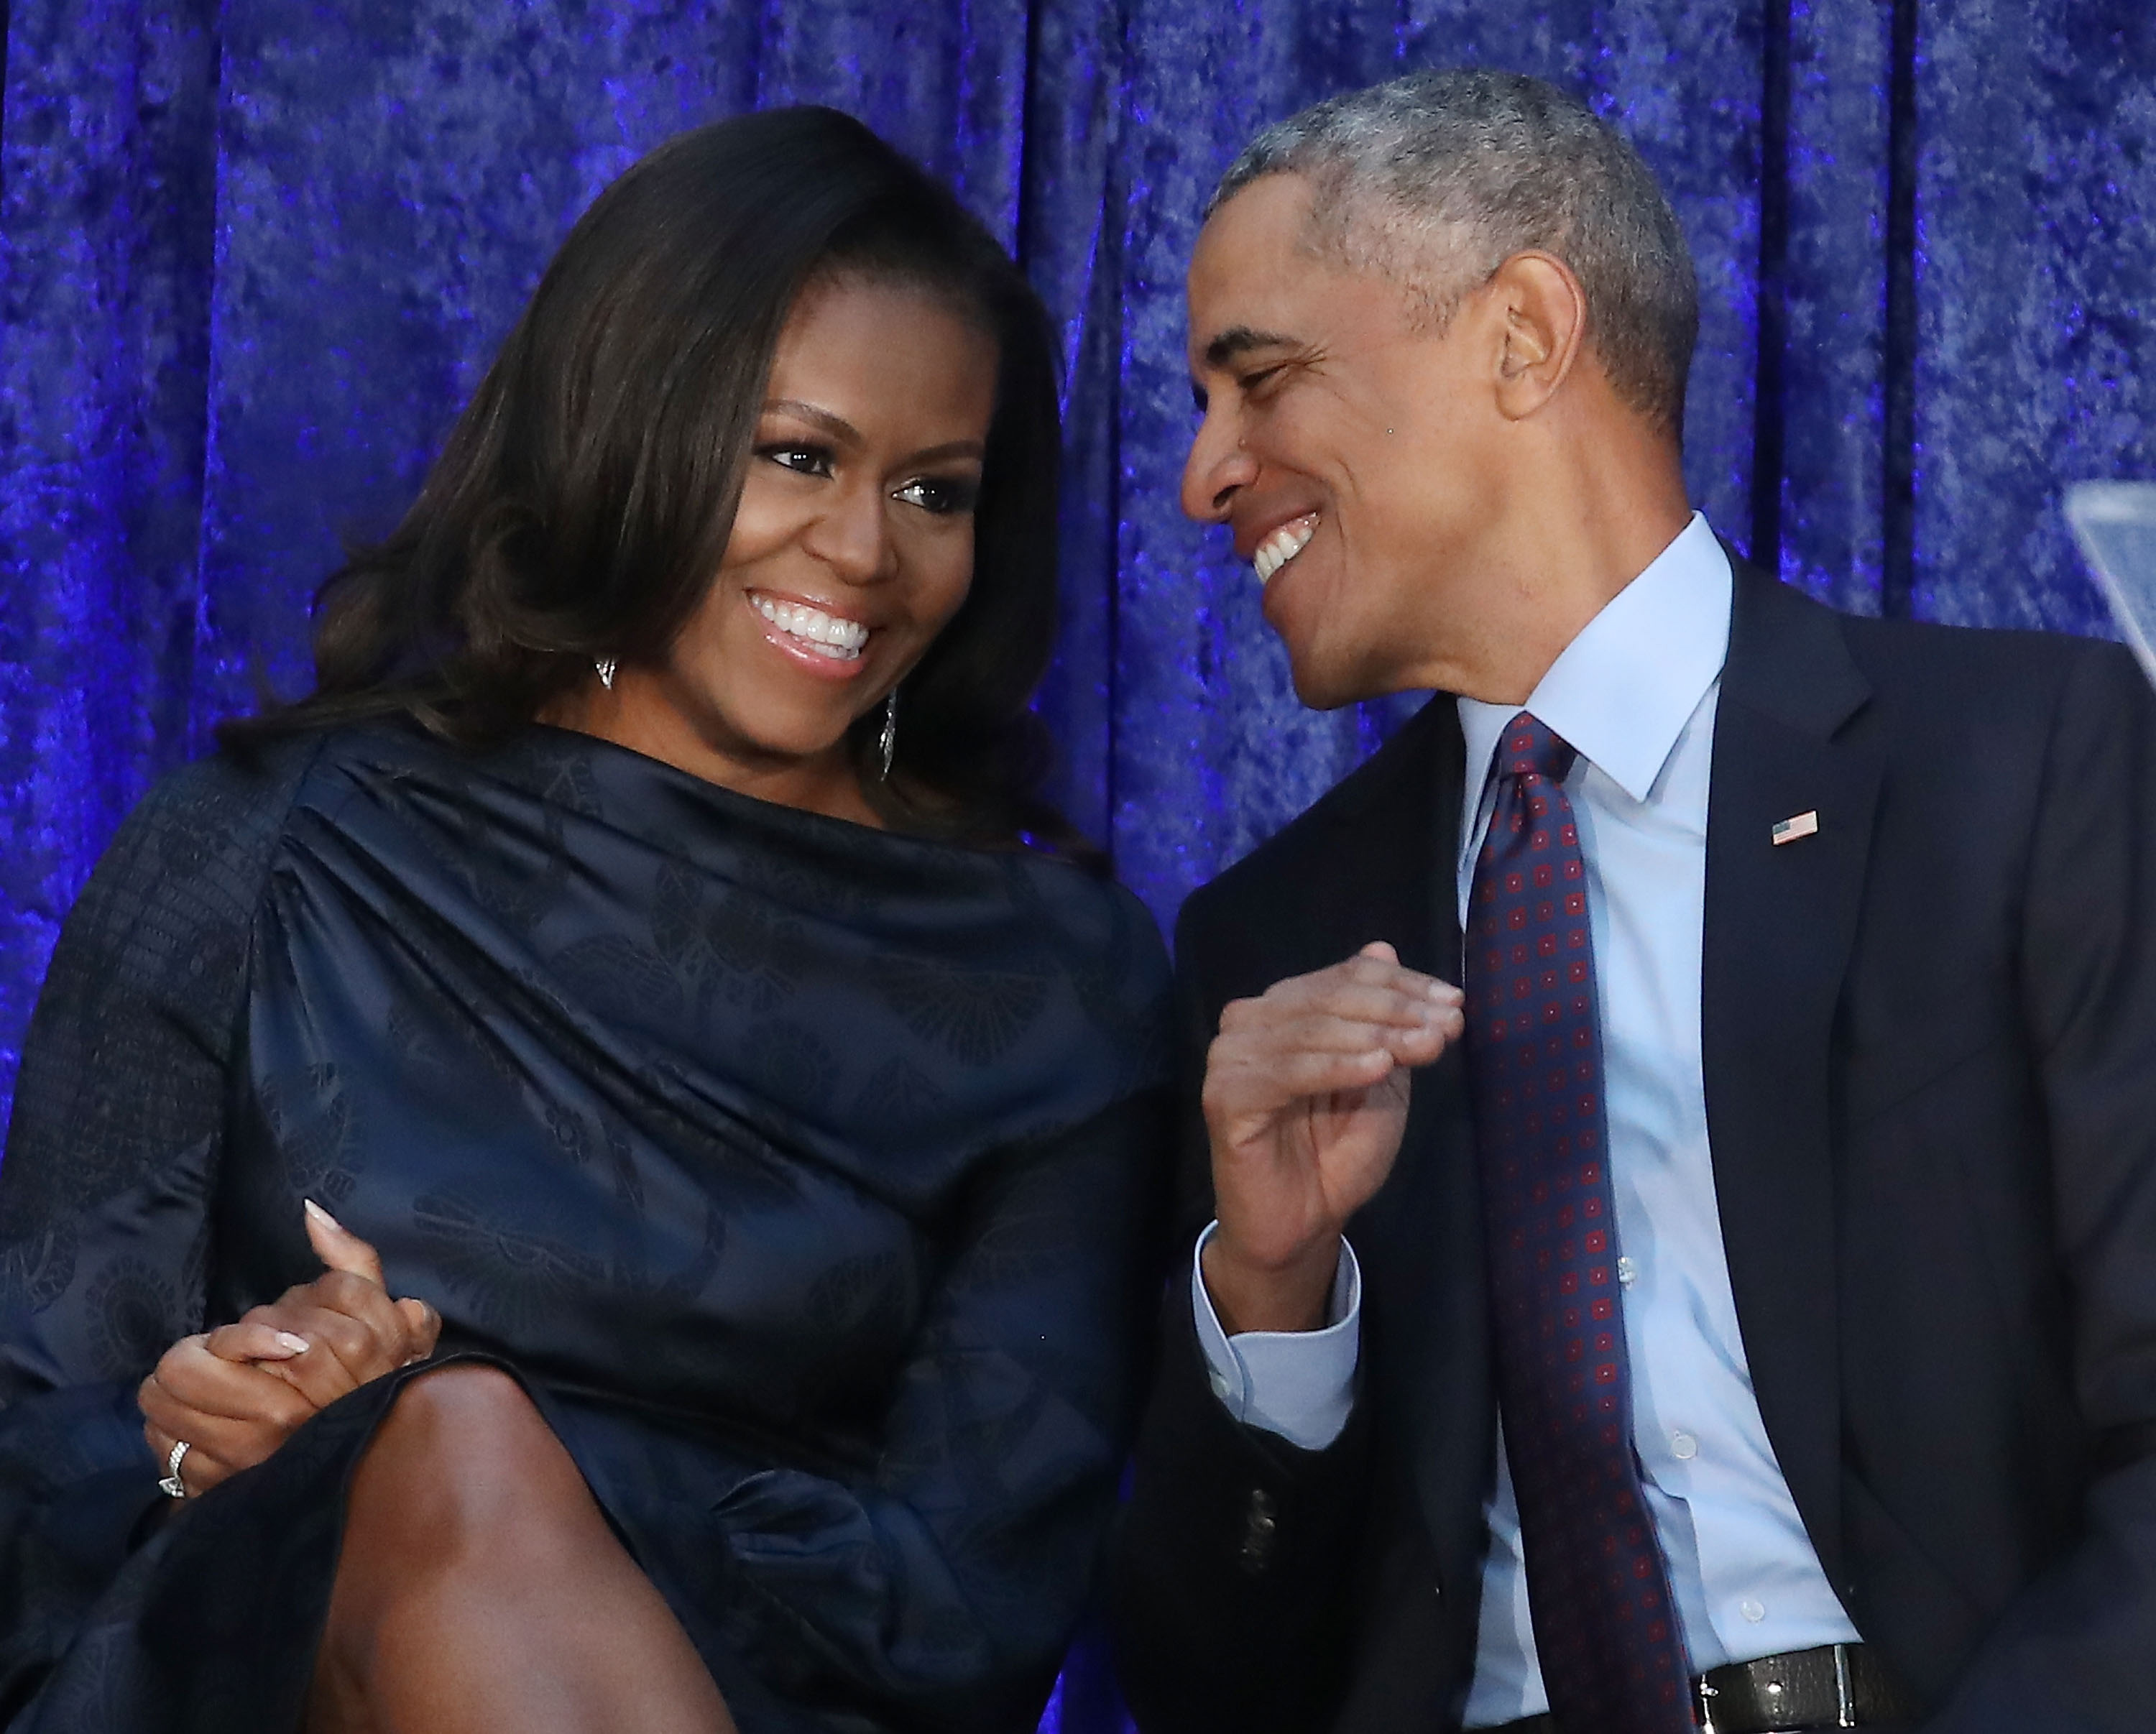 Michelle Obama Reveals Miscarriage, Says She Used IVF to Conceive Daughters